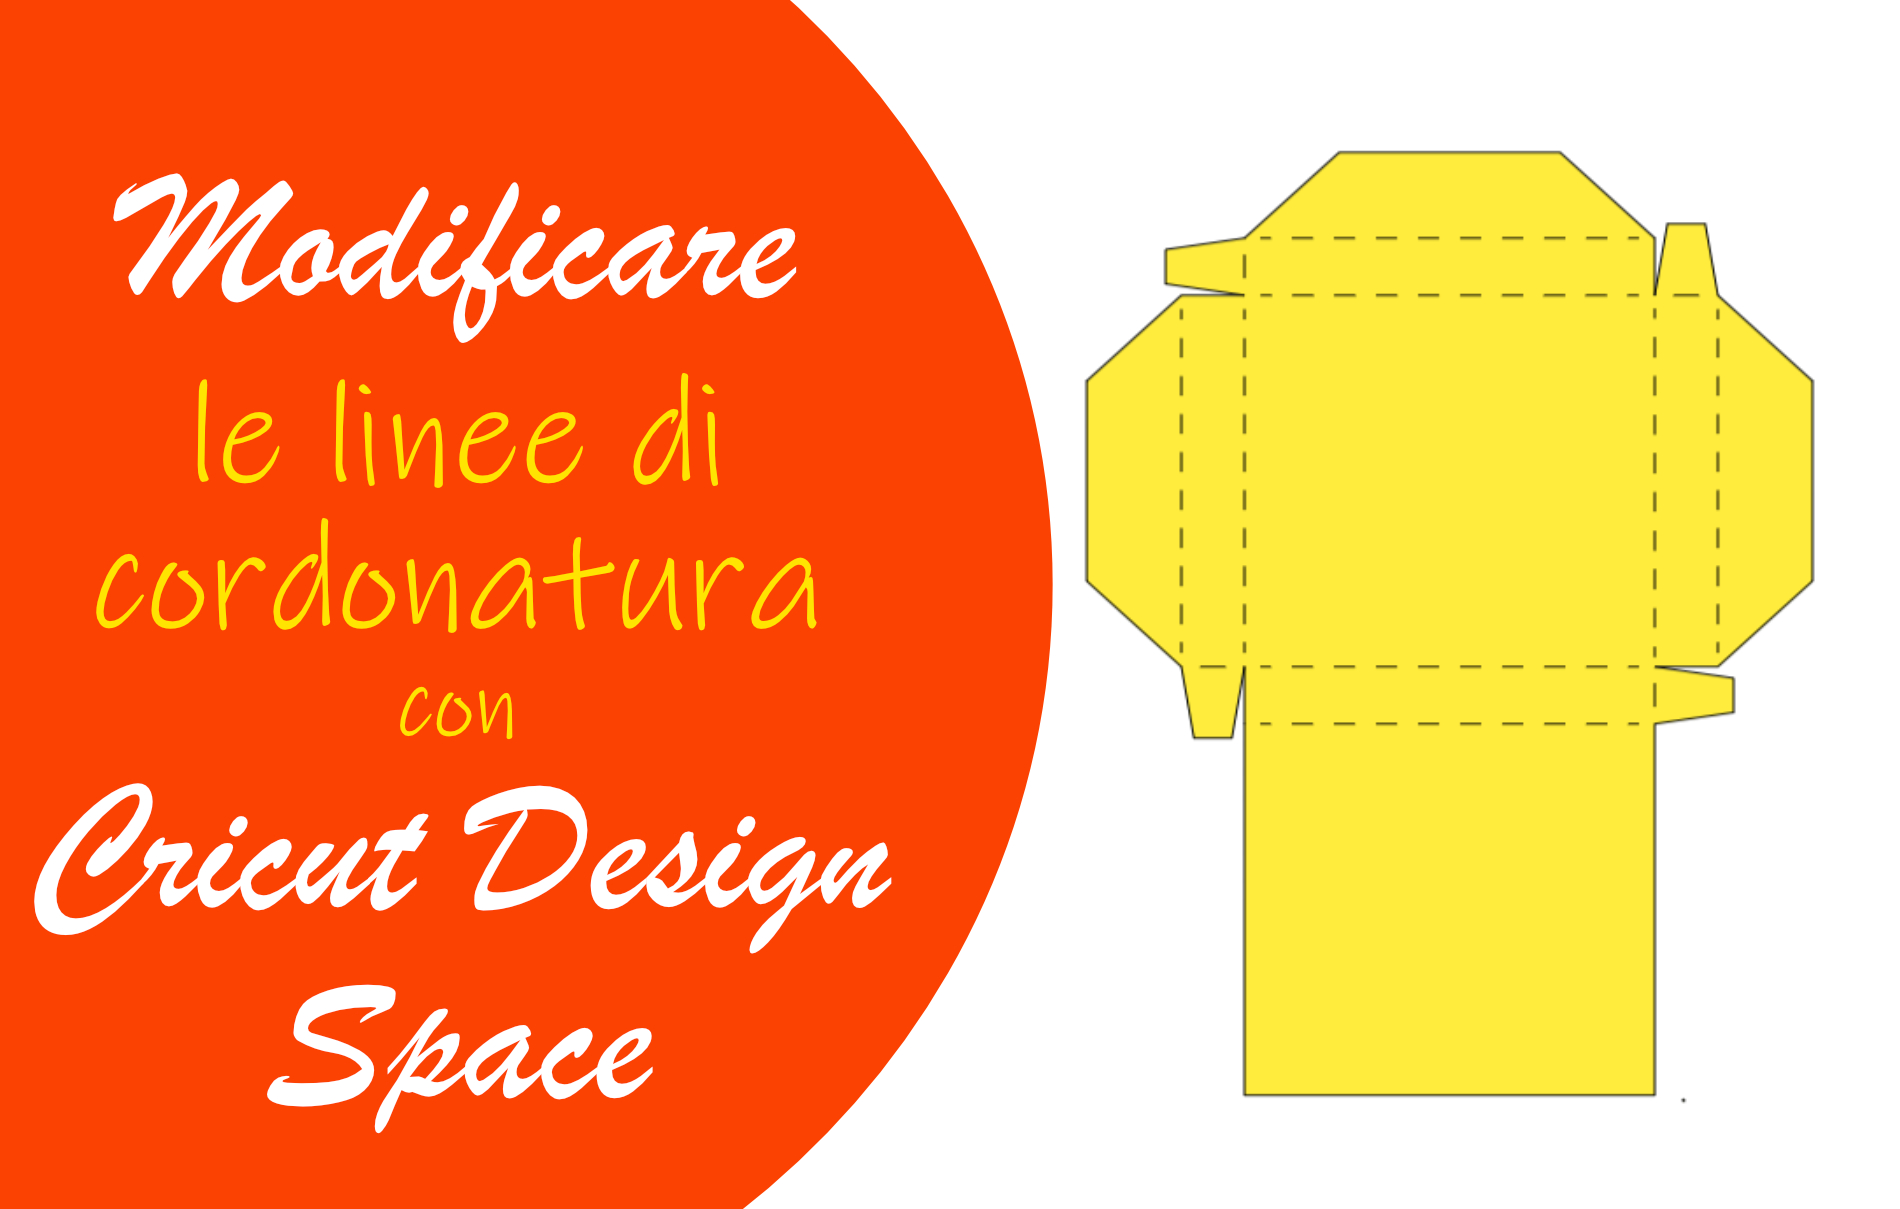 Linee di cordonatura Cricut Design Space